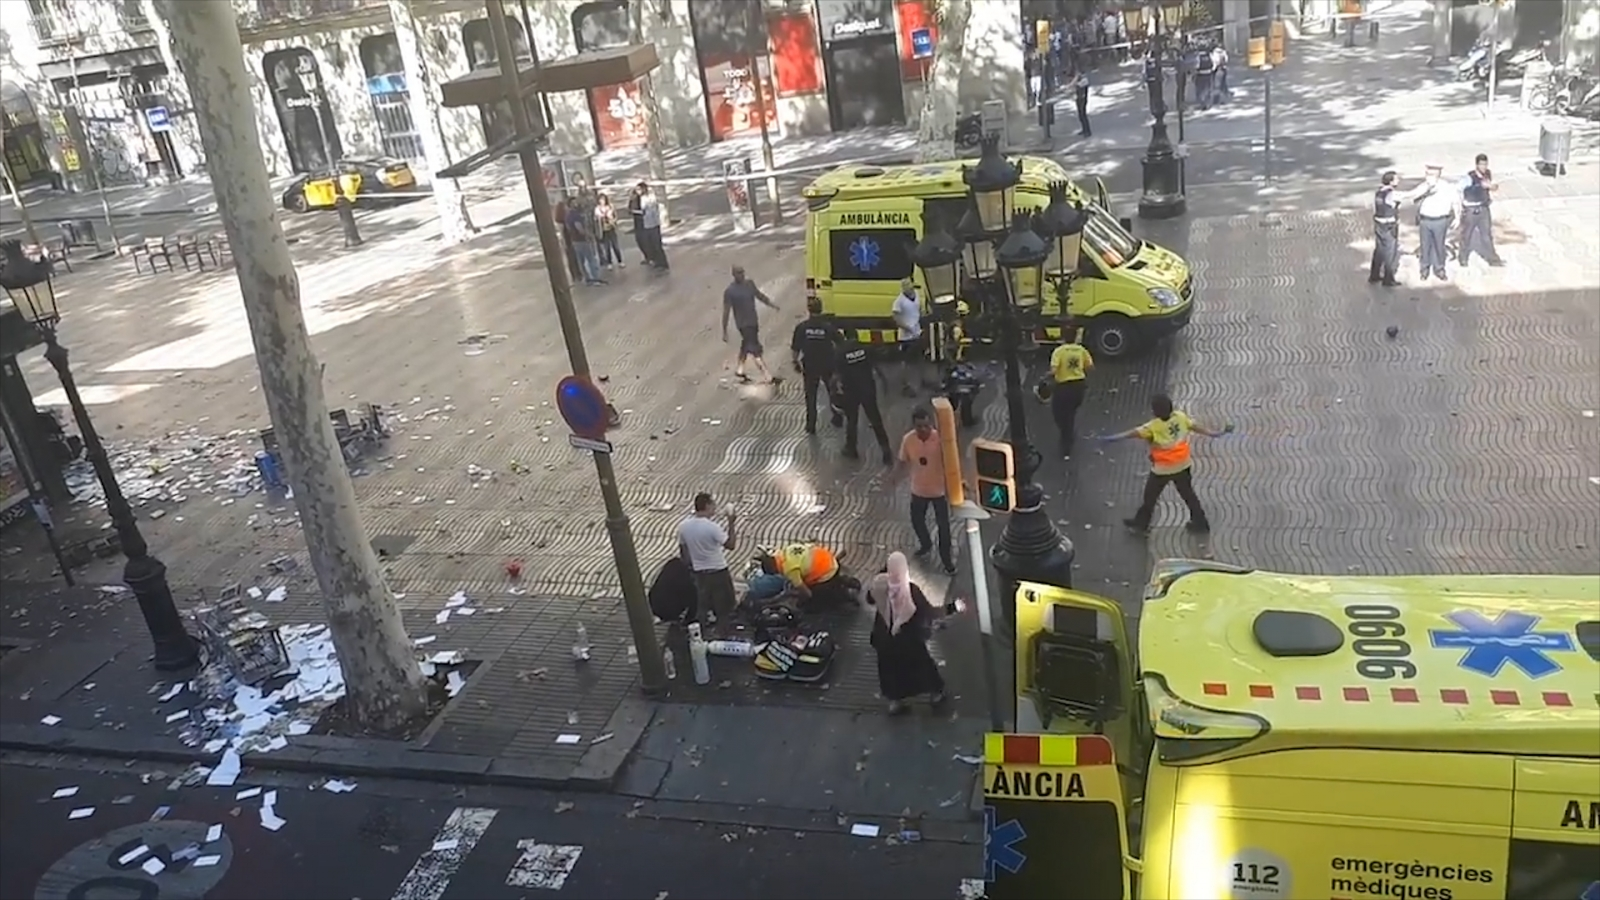 Footage shows aftermath in Las Ramblas after van ploughs into pedestrians